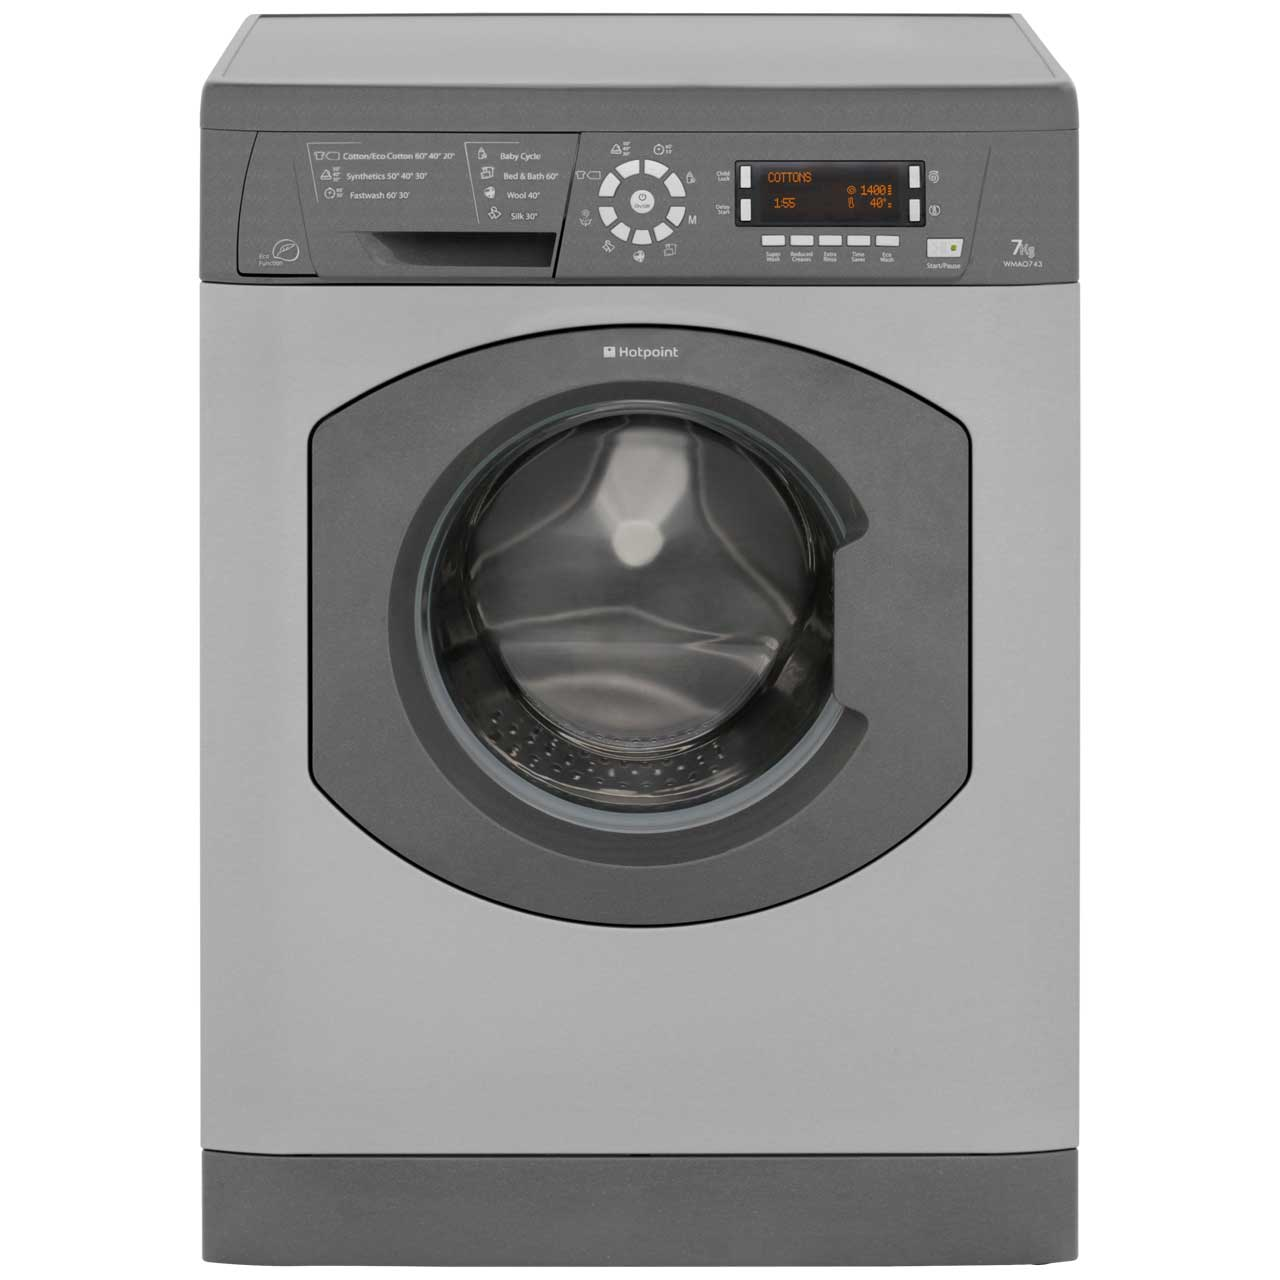 Hotpoint WMAO743G 7Kg Washing Machine with 1400 rpm - Graphite